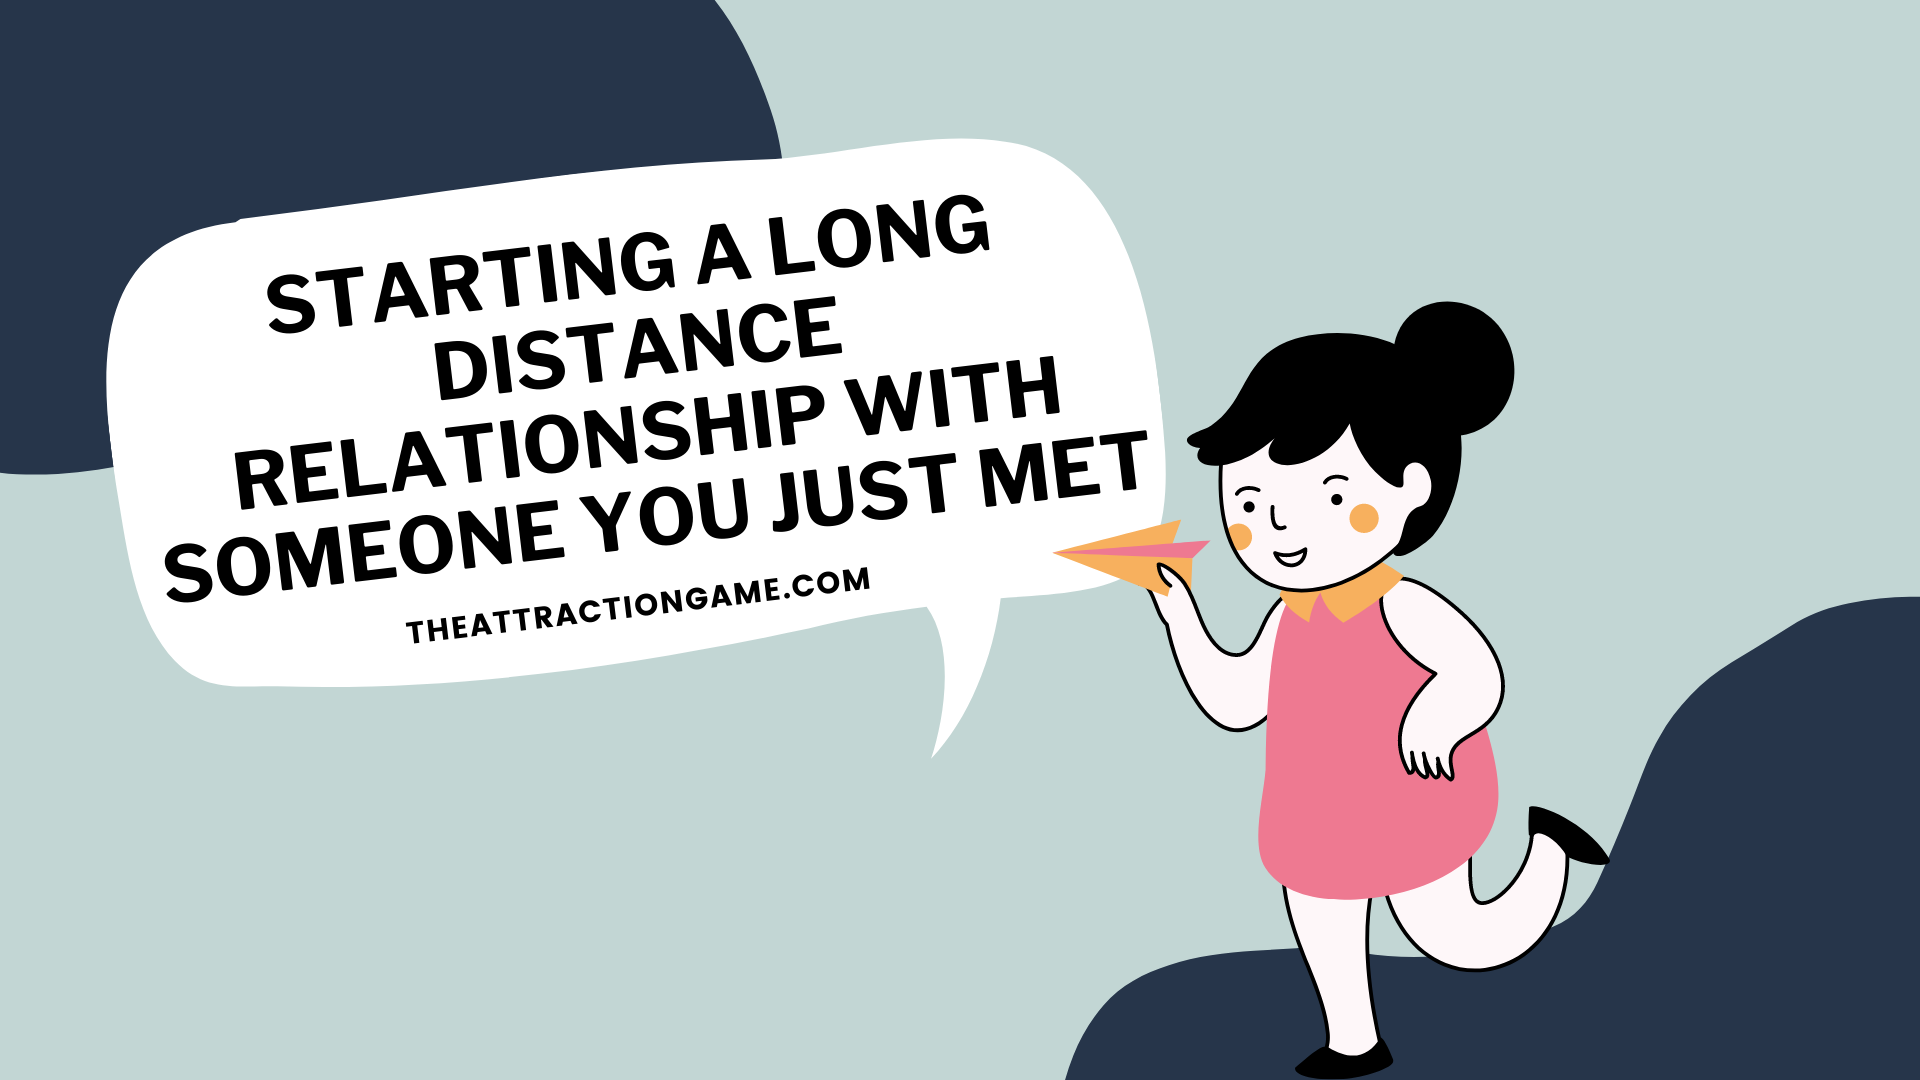 starting a long distance relationship, long distance relationship with someone you just met, starting a relationship with someone you just met